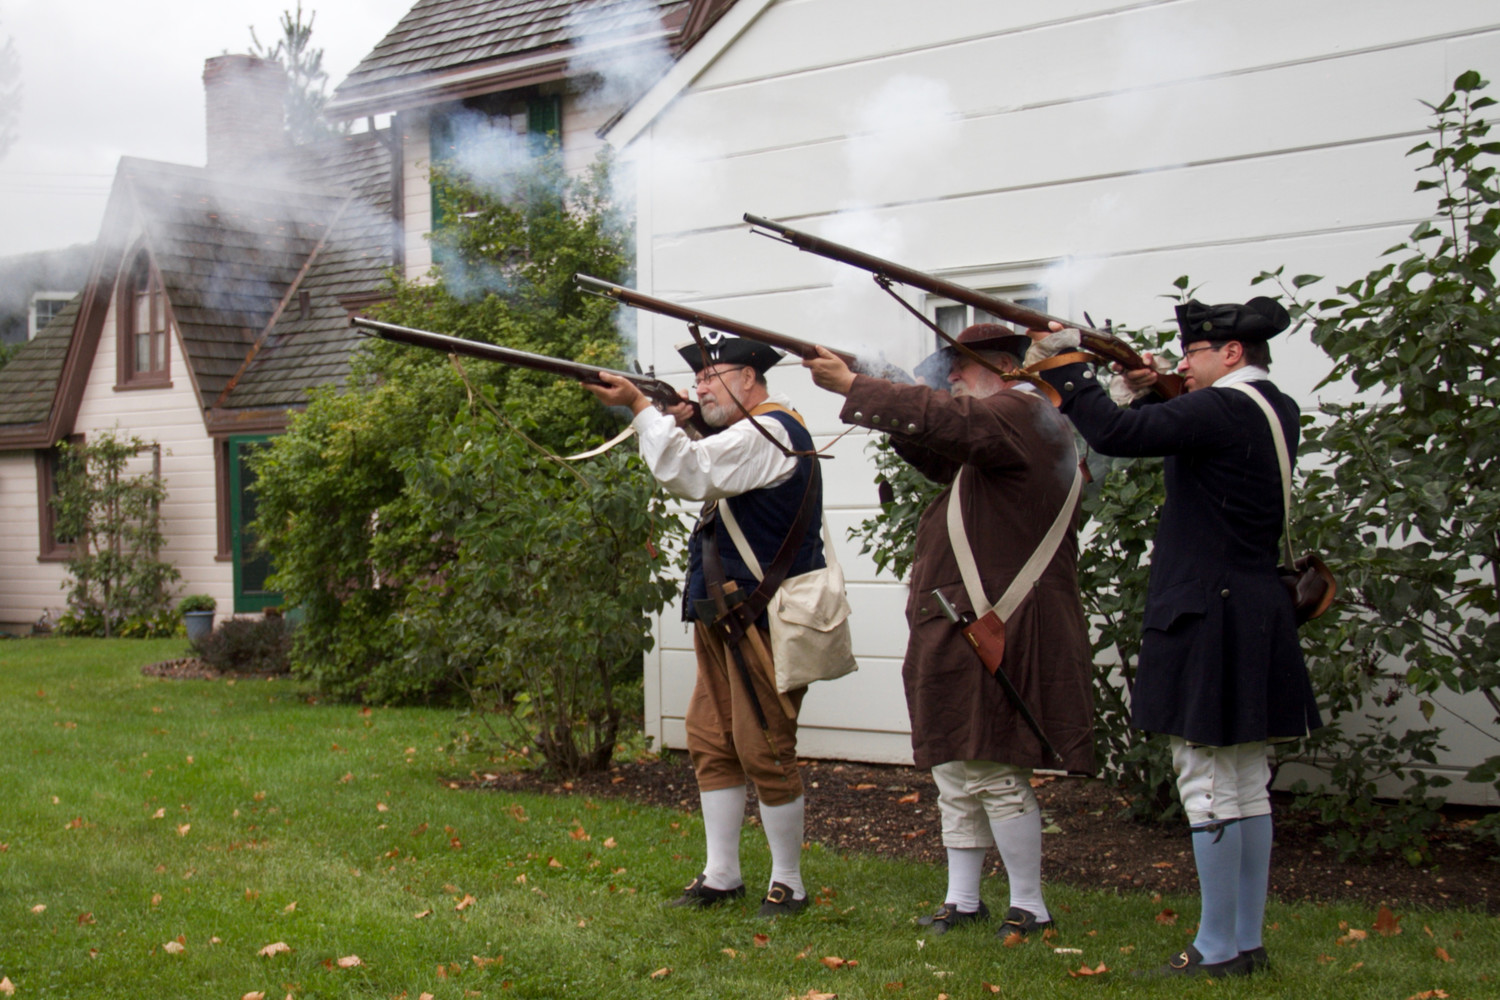 Members of the Huntington Militia, from left, Andy Tauvers, Jim Kerrigan and Patrick Mantle, fired their muskets.